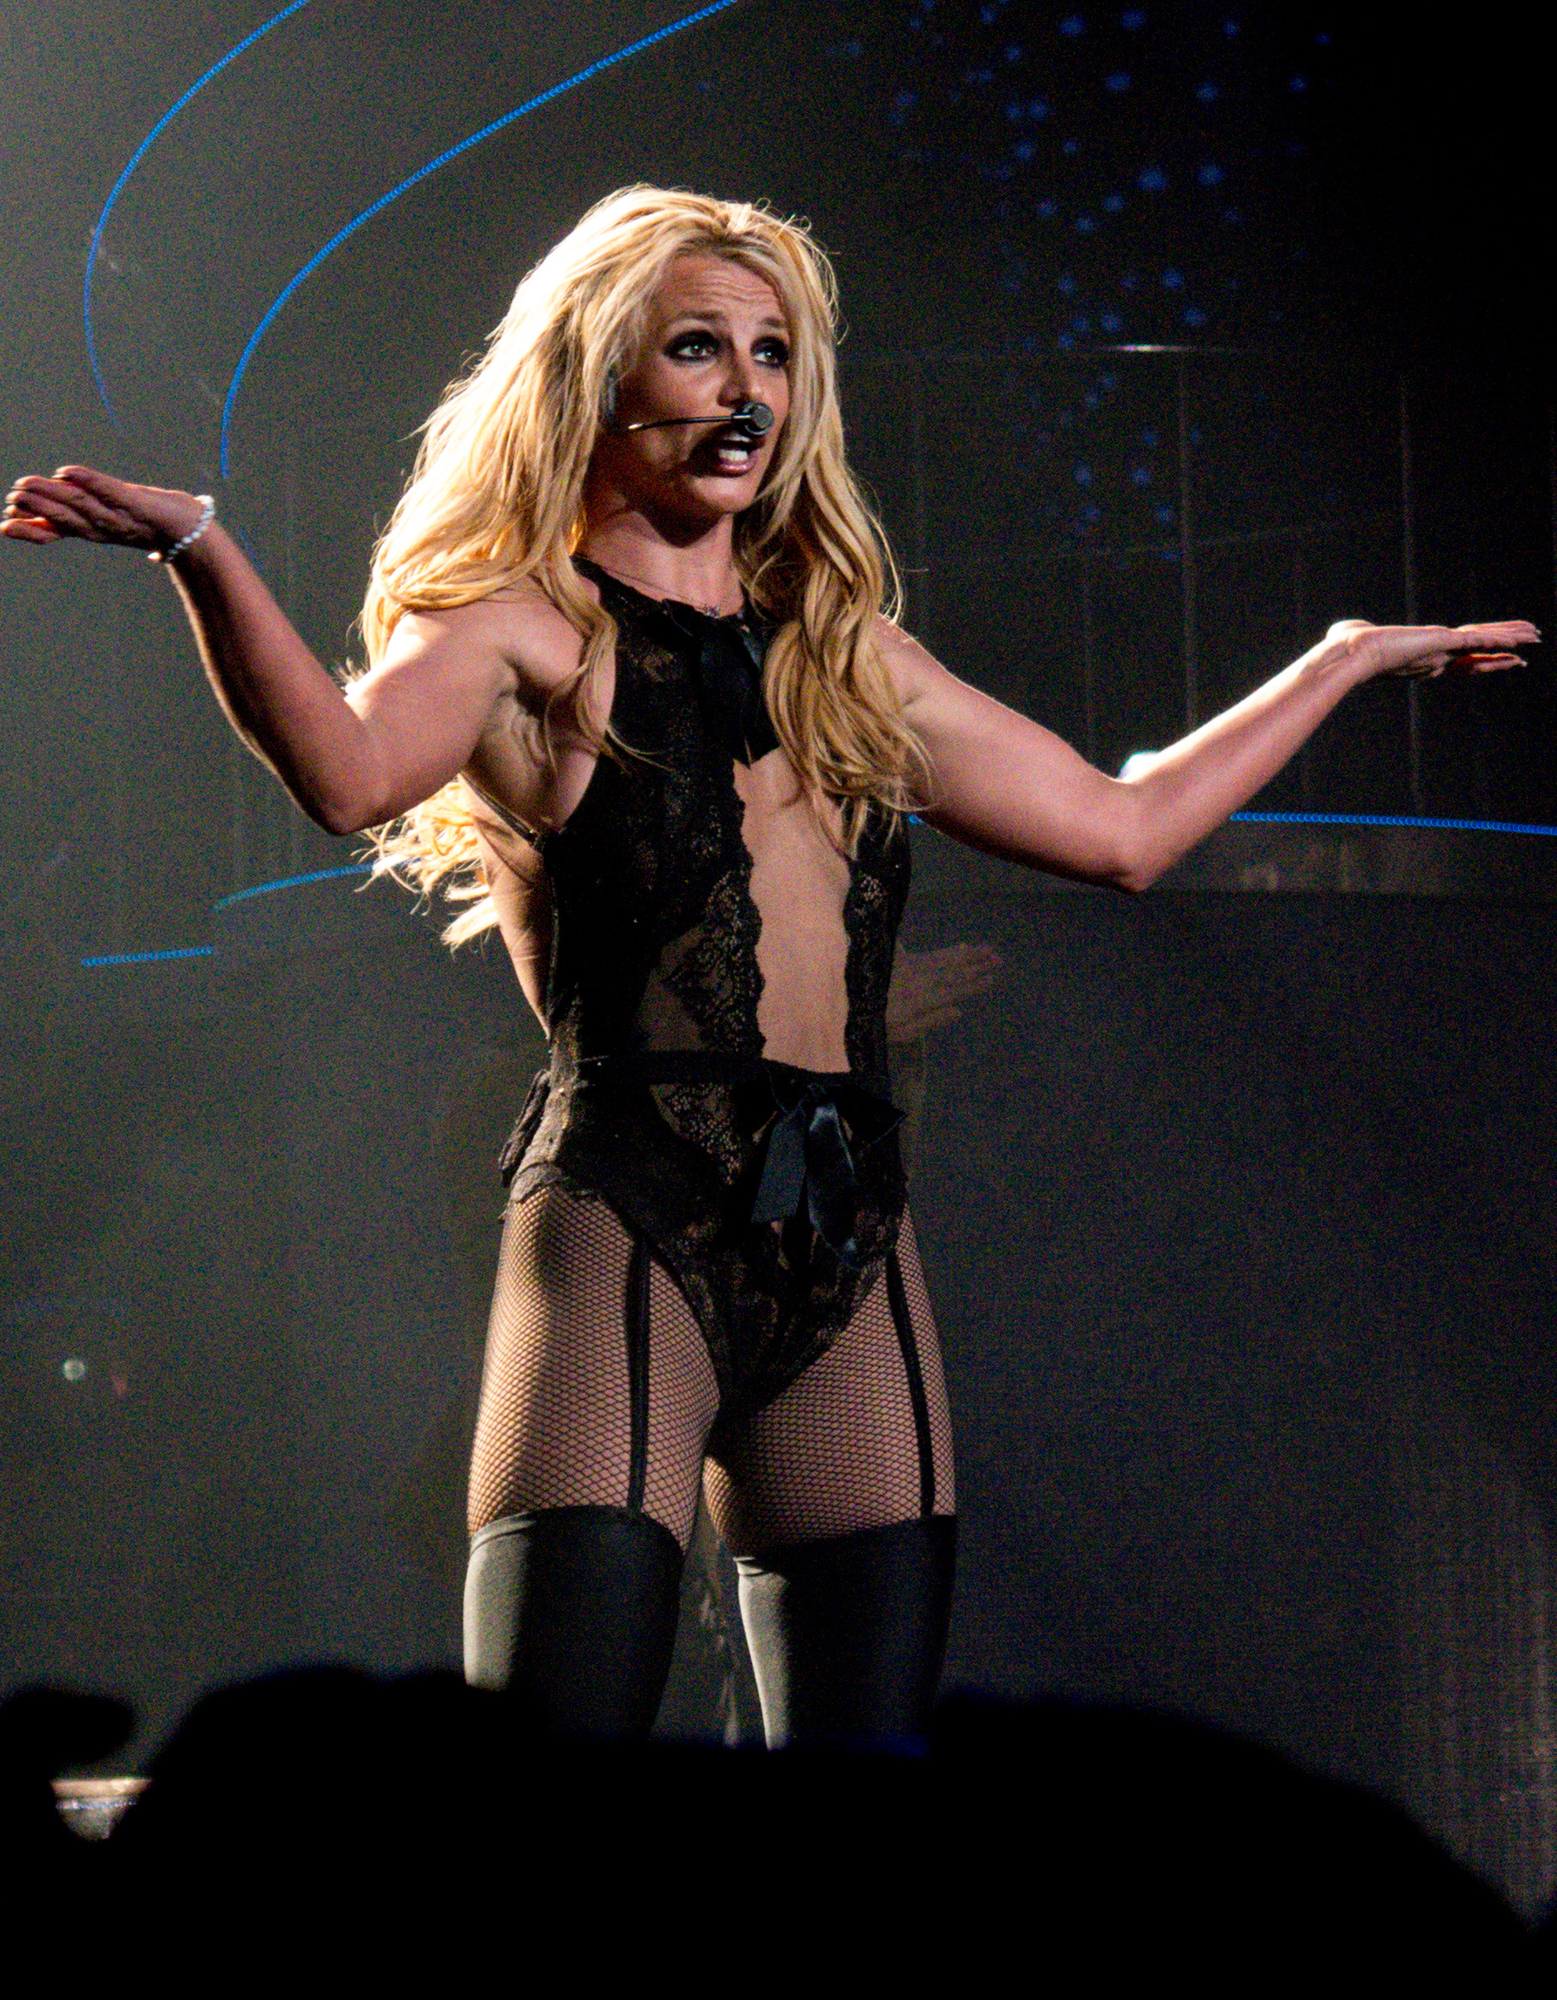 Britney Spears brings a triumphant end to her 4 year residency at the AXIS at Planet Hollywood in Las Vegas, CA